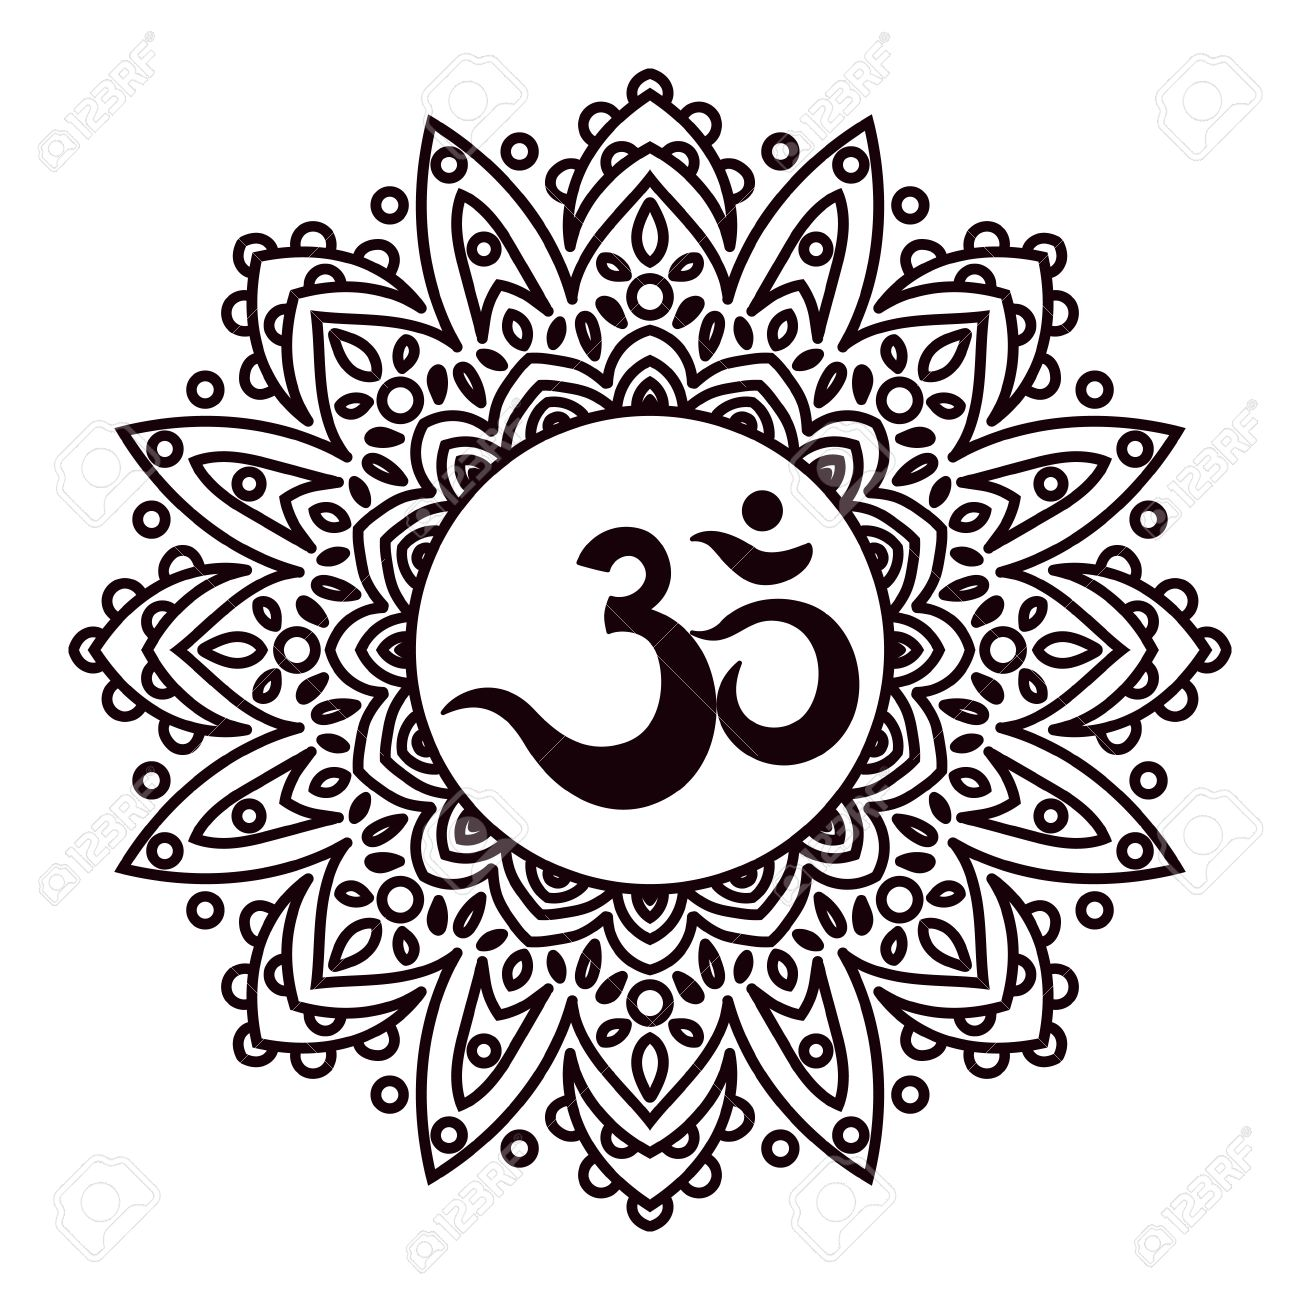 Om or aum indian sacred sound original mantra a word of power om or aum indian sacred sound original mantra a word of power the biocorpaavc Gallery